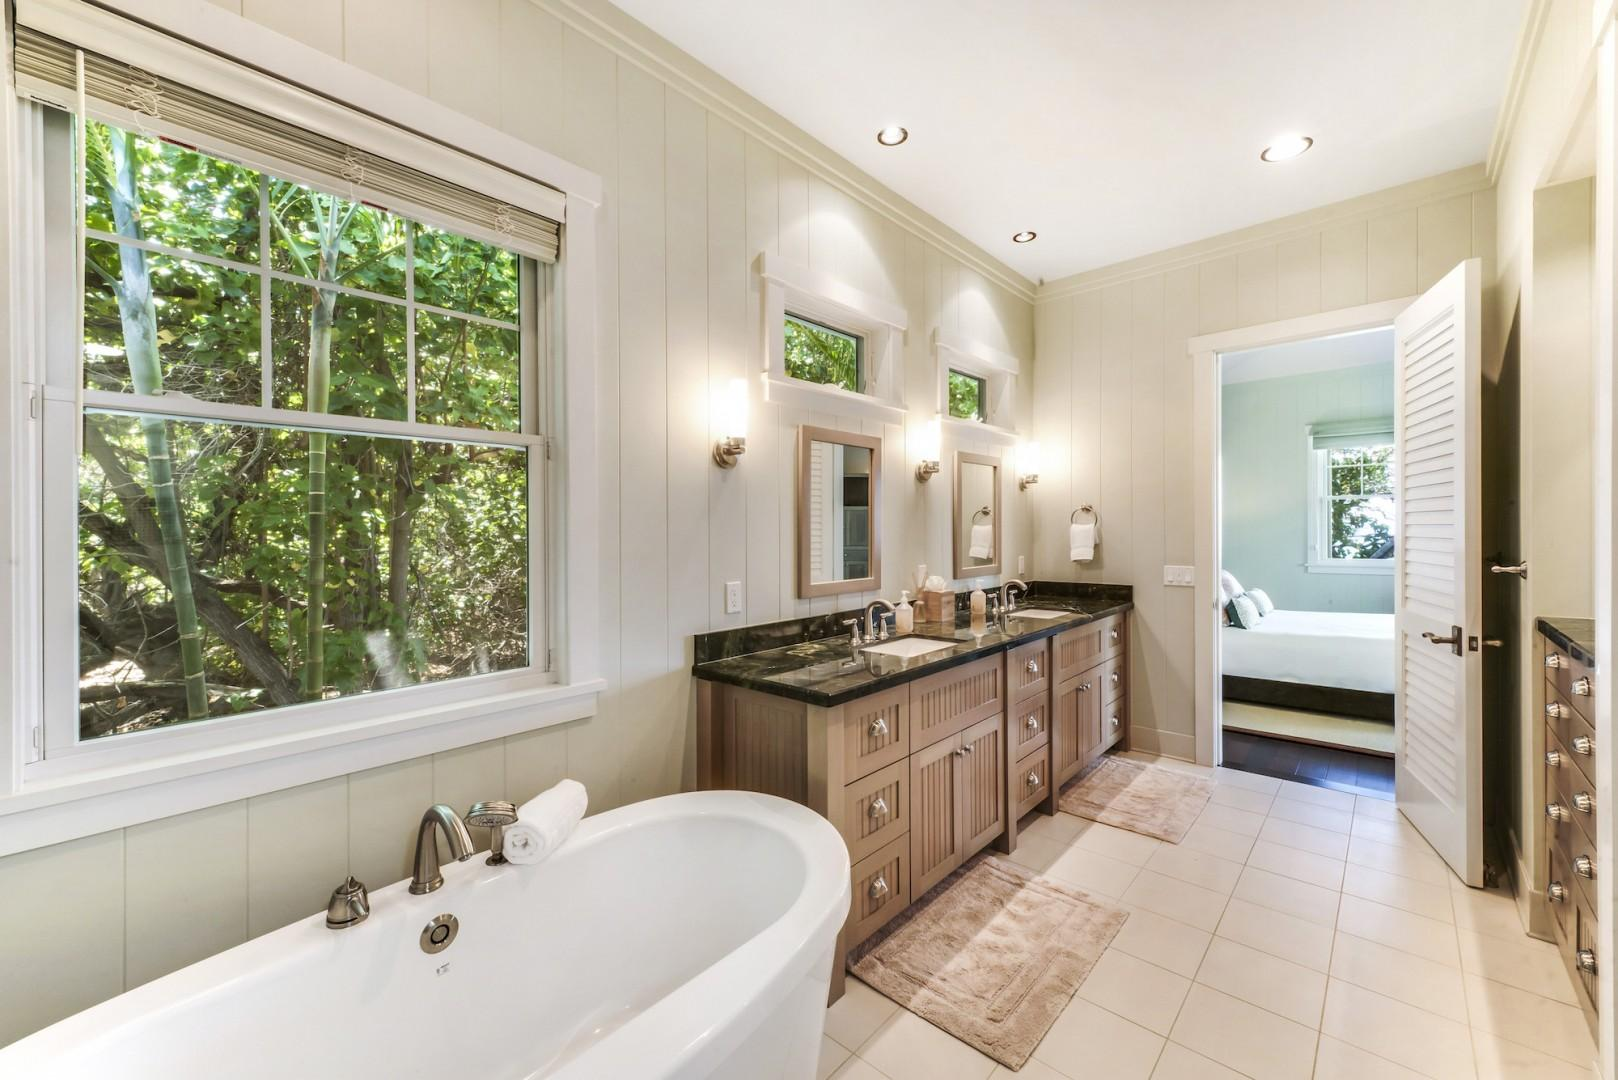 Master Bath w/ Luxurious Soaking Tub, Separate and Spacious Tiled Shower w/ Double Shower Heads, Skylight & Tiled Bench, Granite Countertops, Double Sink Vanity and Separate Water Closet.